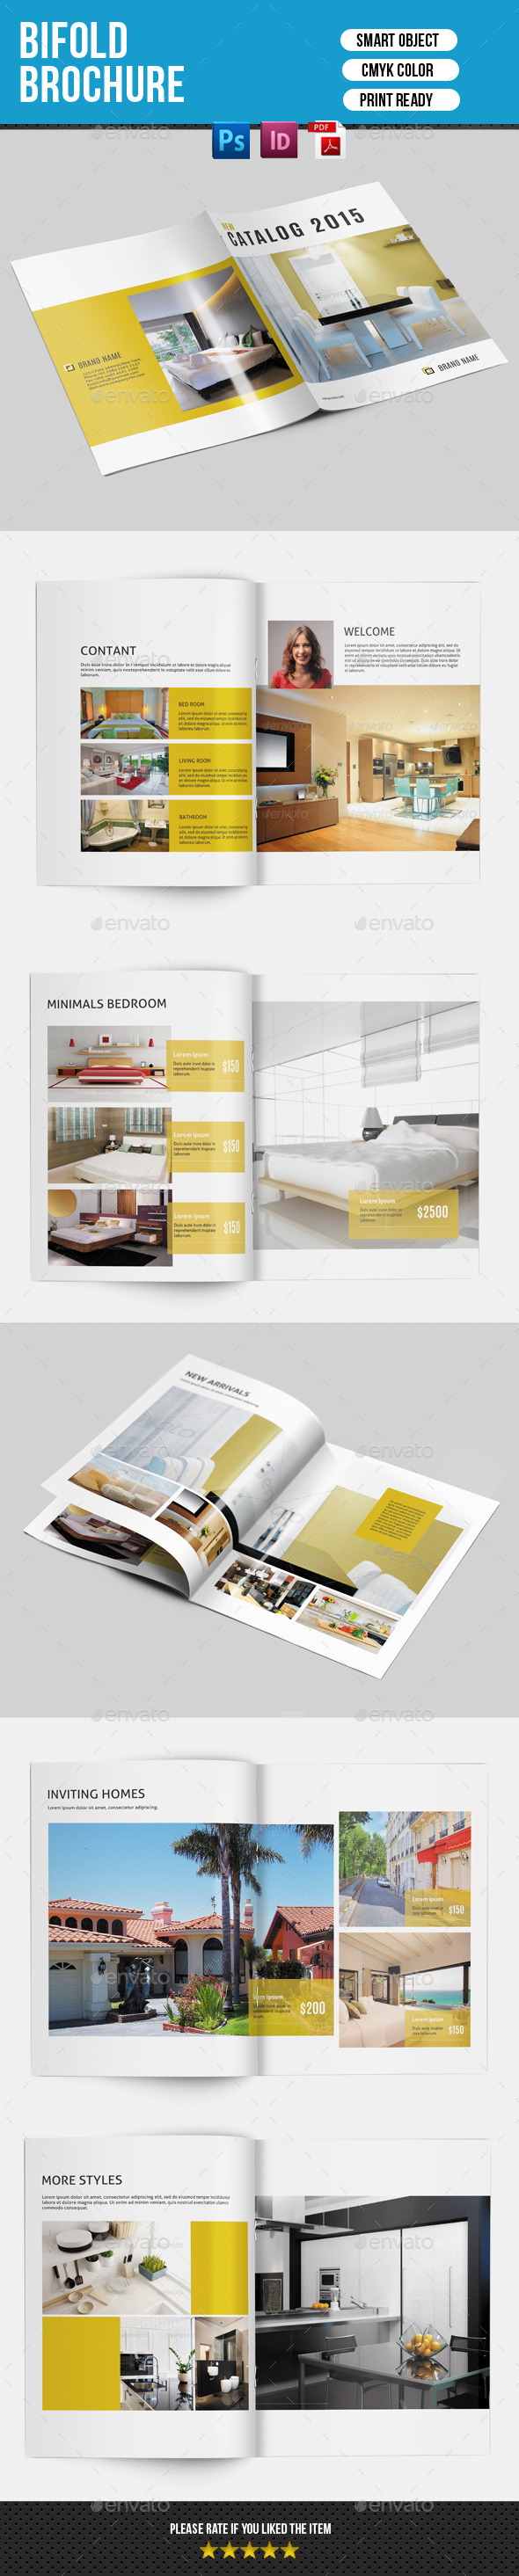 GraphicRiver Bifold Brochure for Interior Design-V141 9077116